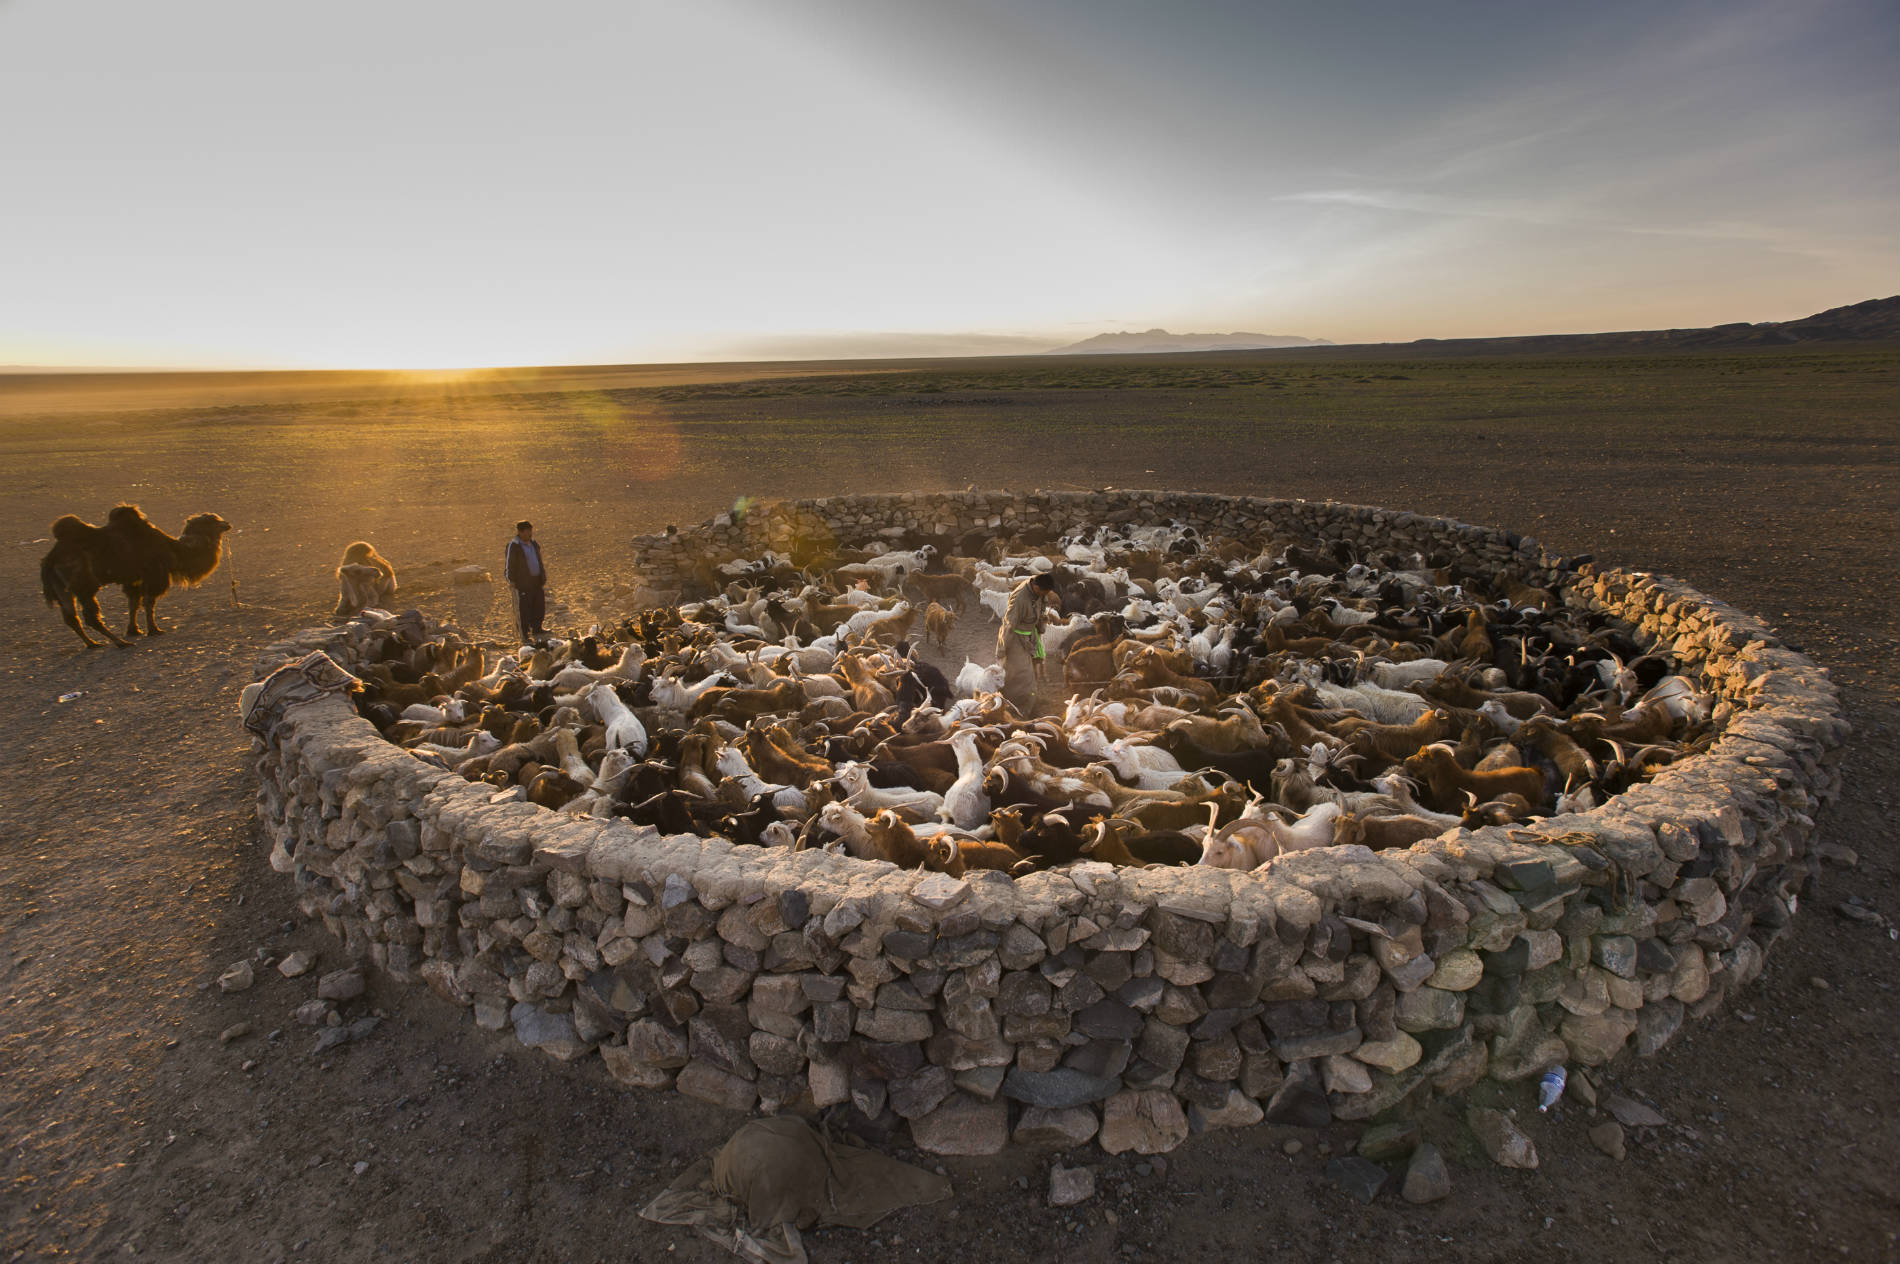 Nomads, goats, and camels, Mongolia